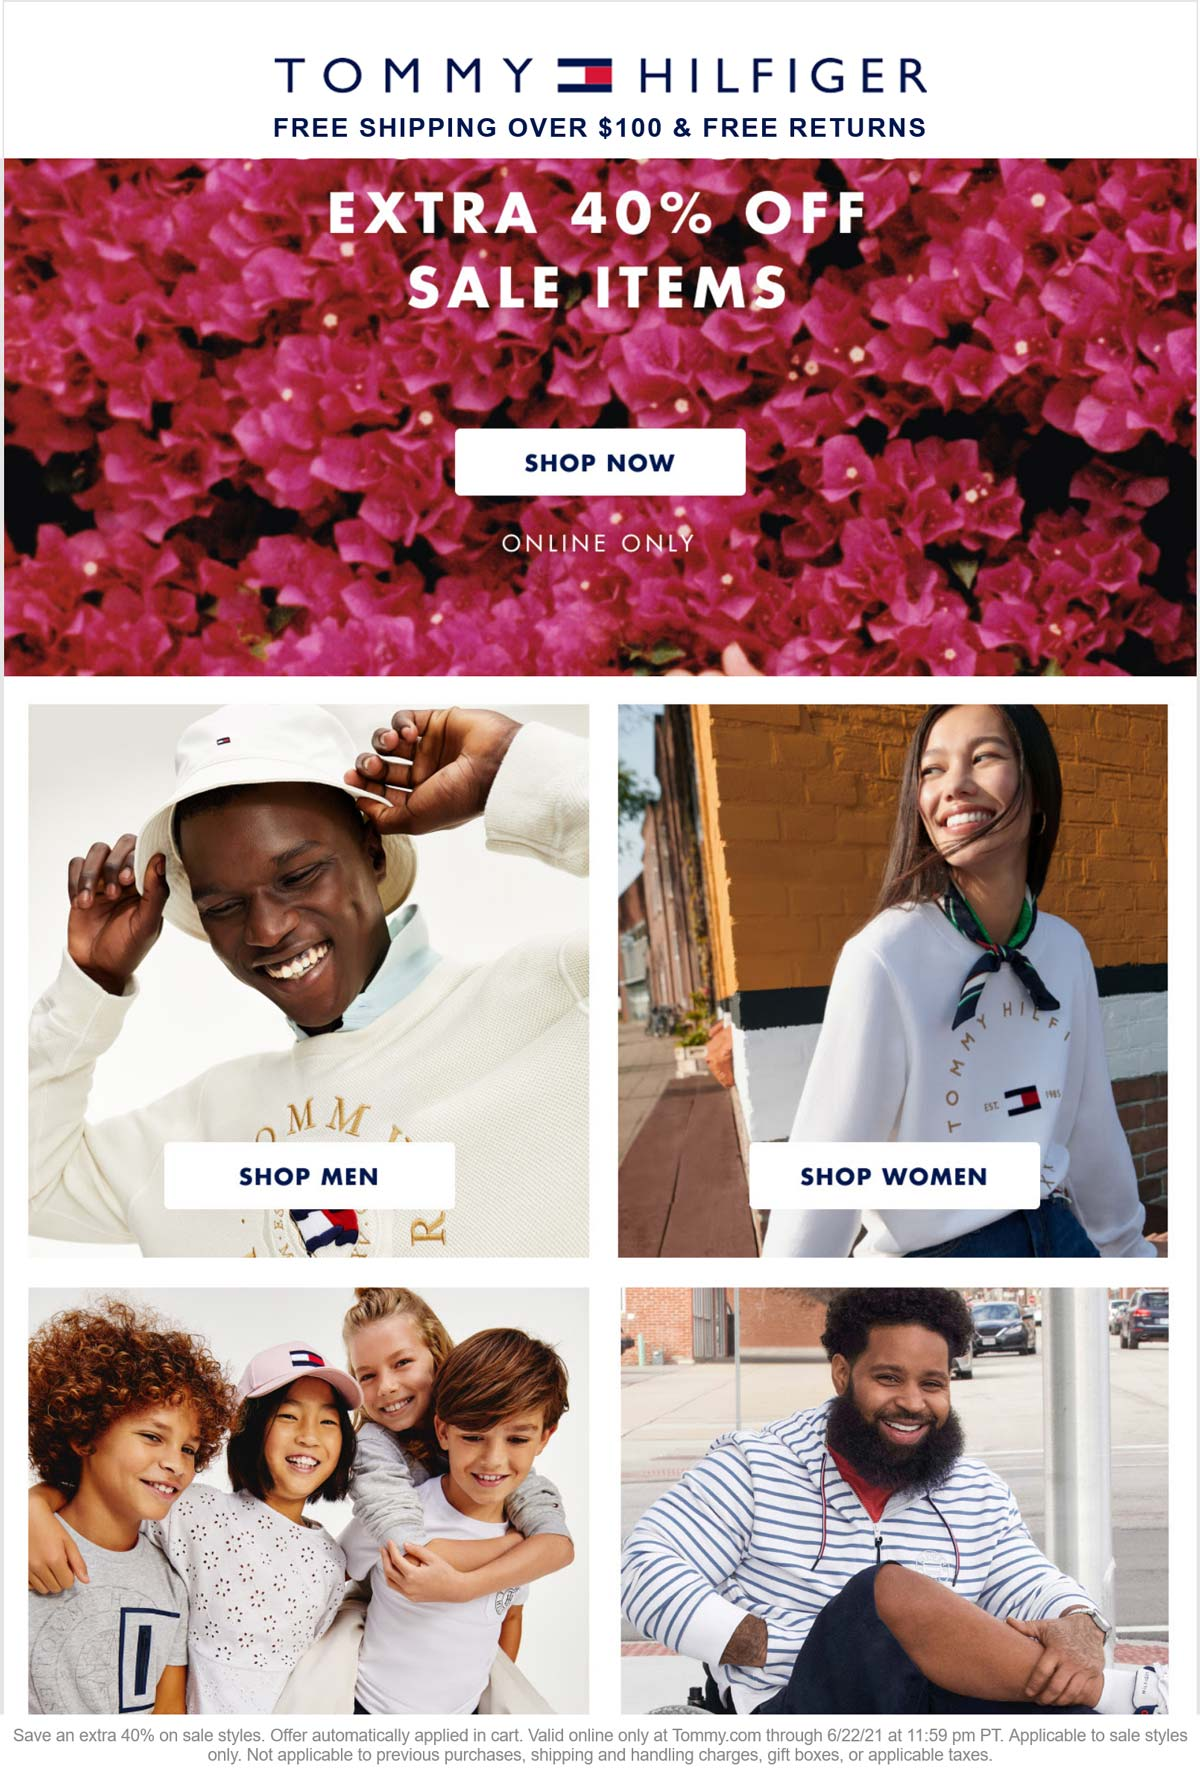 Tommy Hilfiger stores Coupon  Extra 40% off sale items online at Tommy Hilfiger #tommyhilfiger